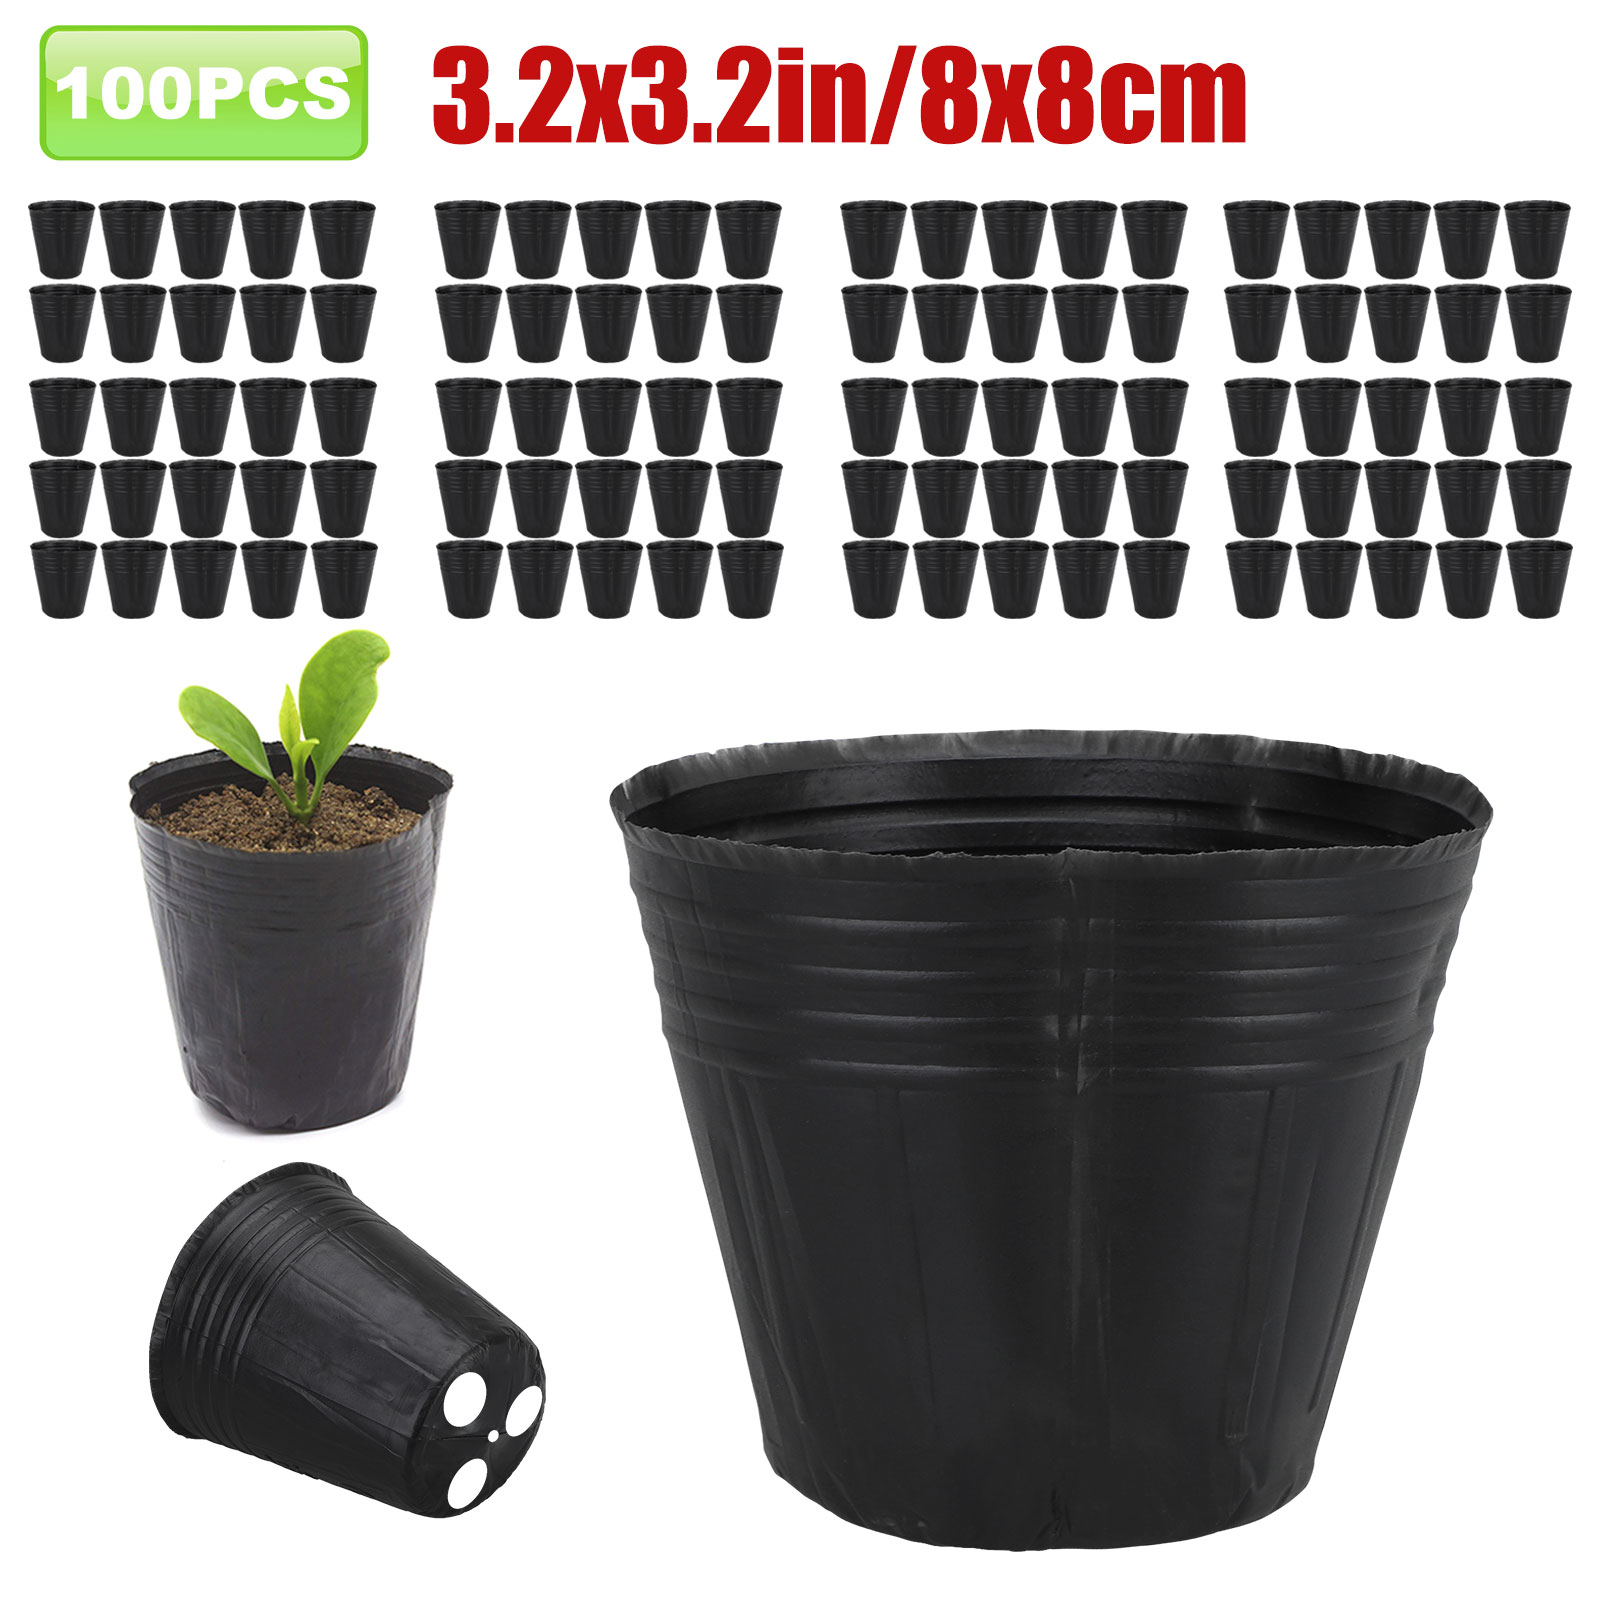 100PCS-Plant-Flower-Pots-Outdoor-Living-Garden-Nursery-Seedlings-Pot-Container thumbnail 11